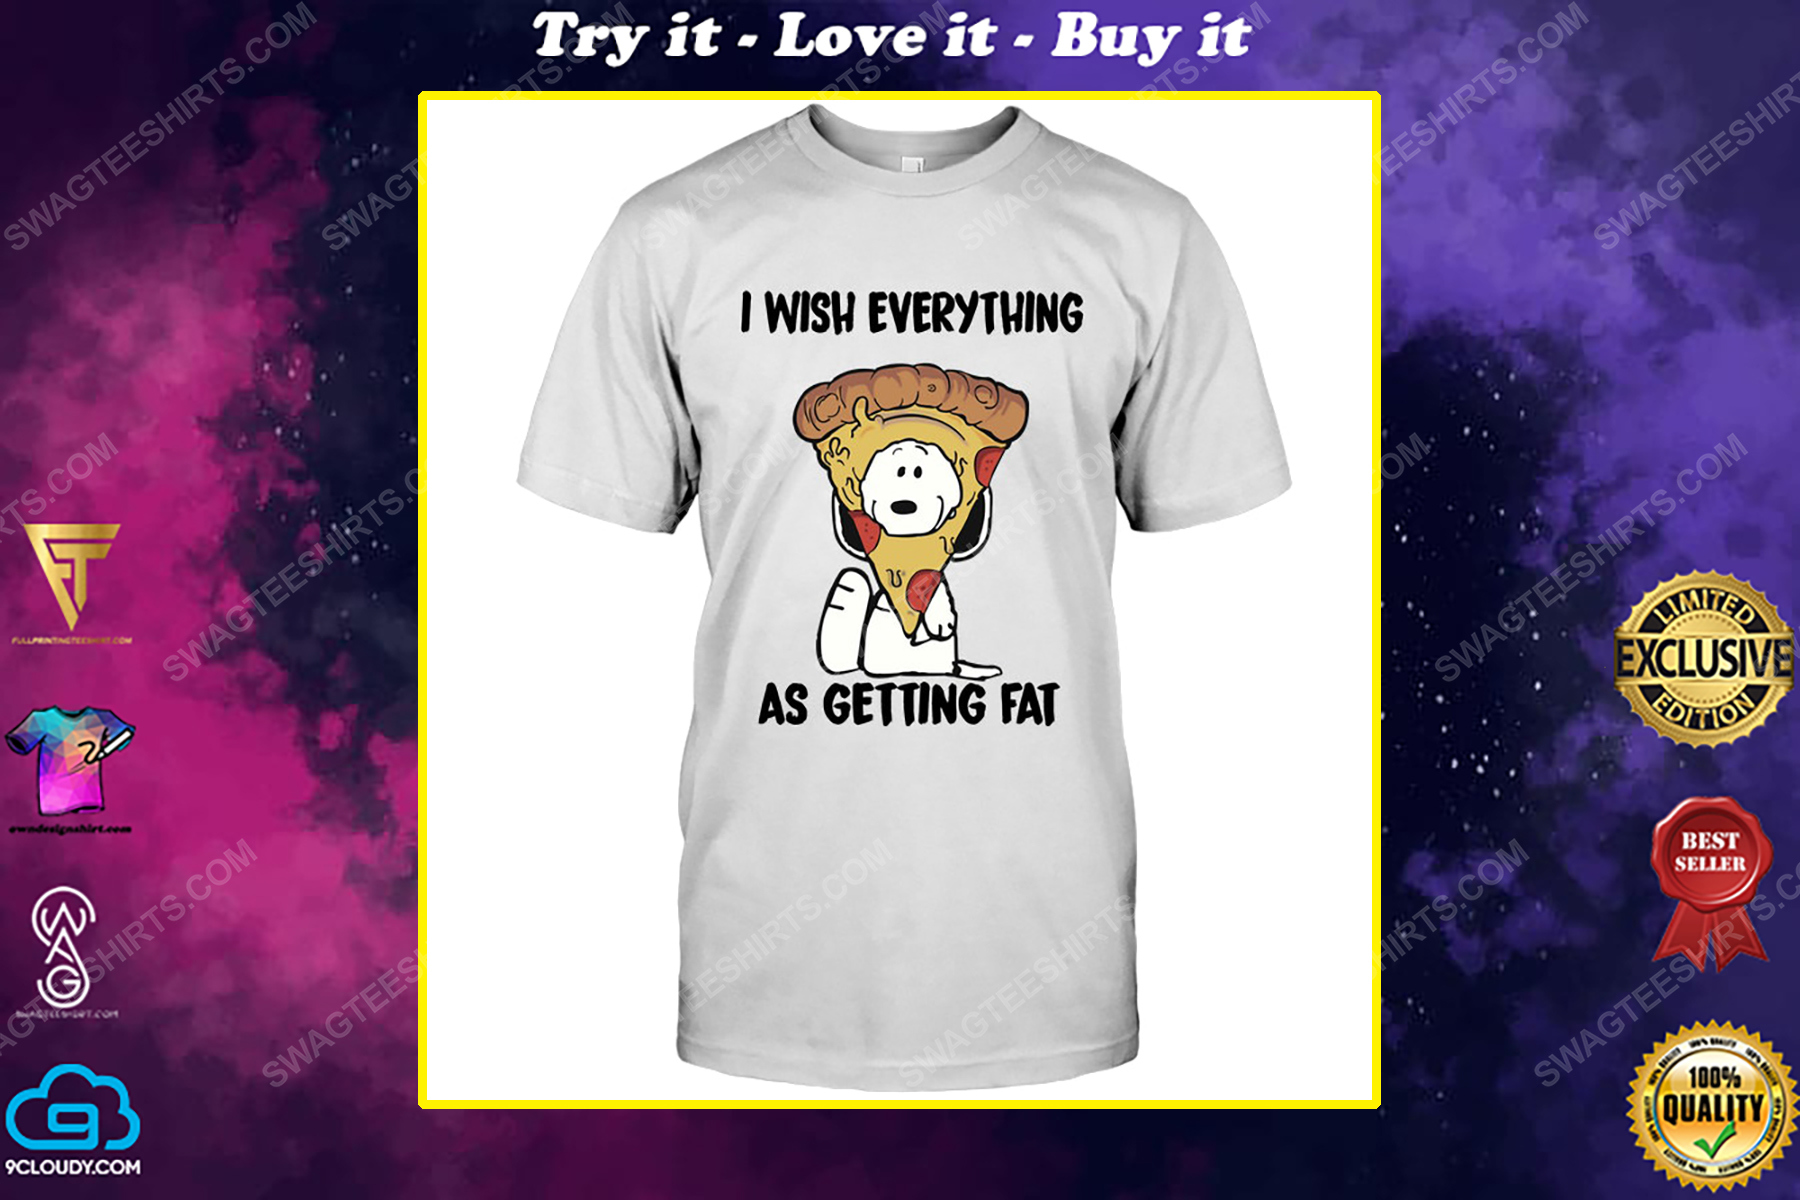 Snoopy and pizza i wish everything as getting eat shirt